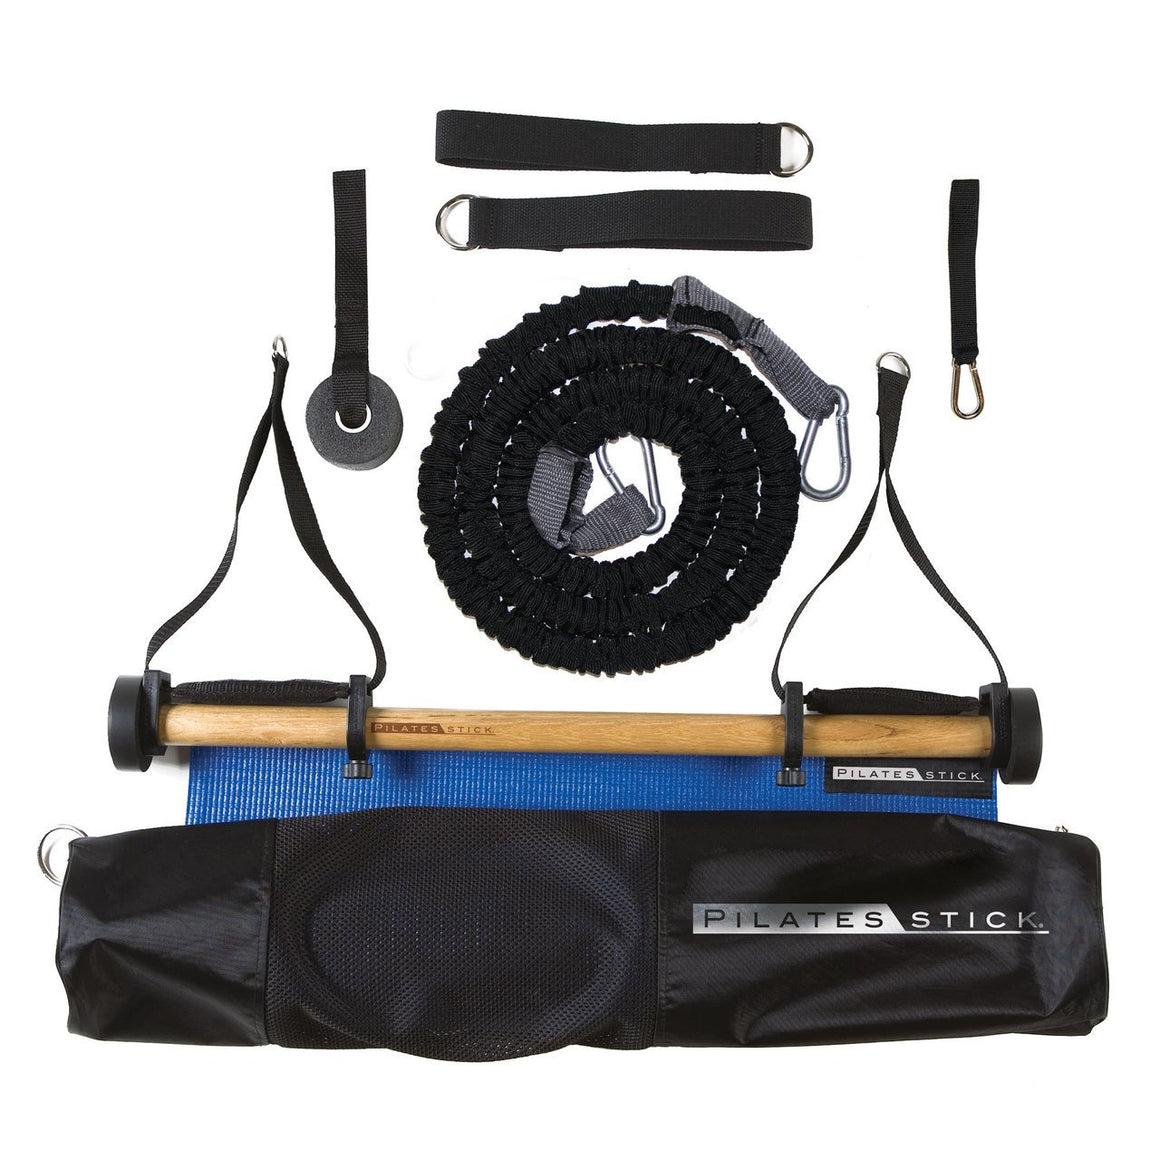 Pilatesstick Basic Kit Package - Indoor Cyclery